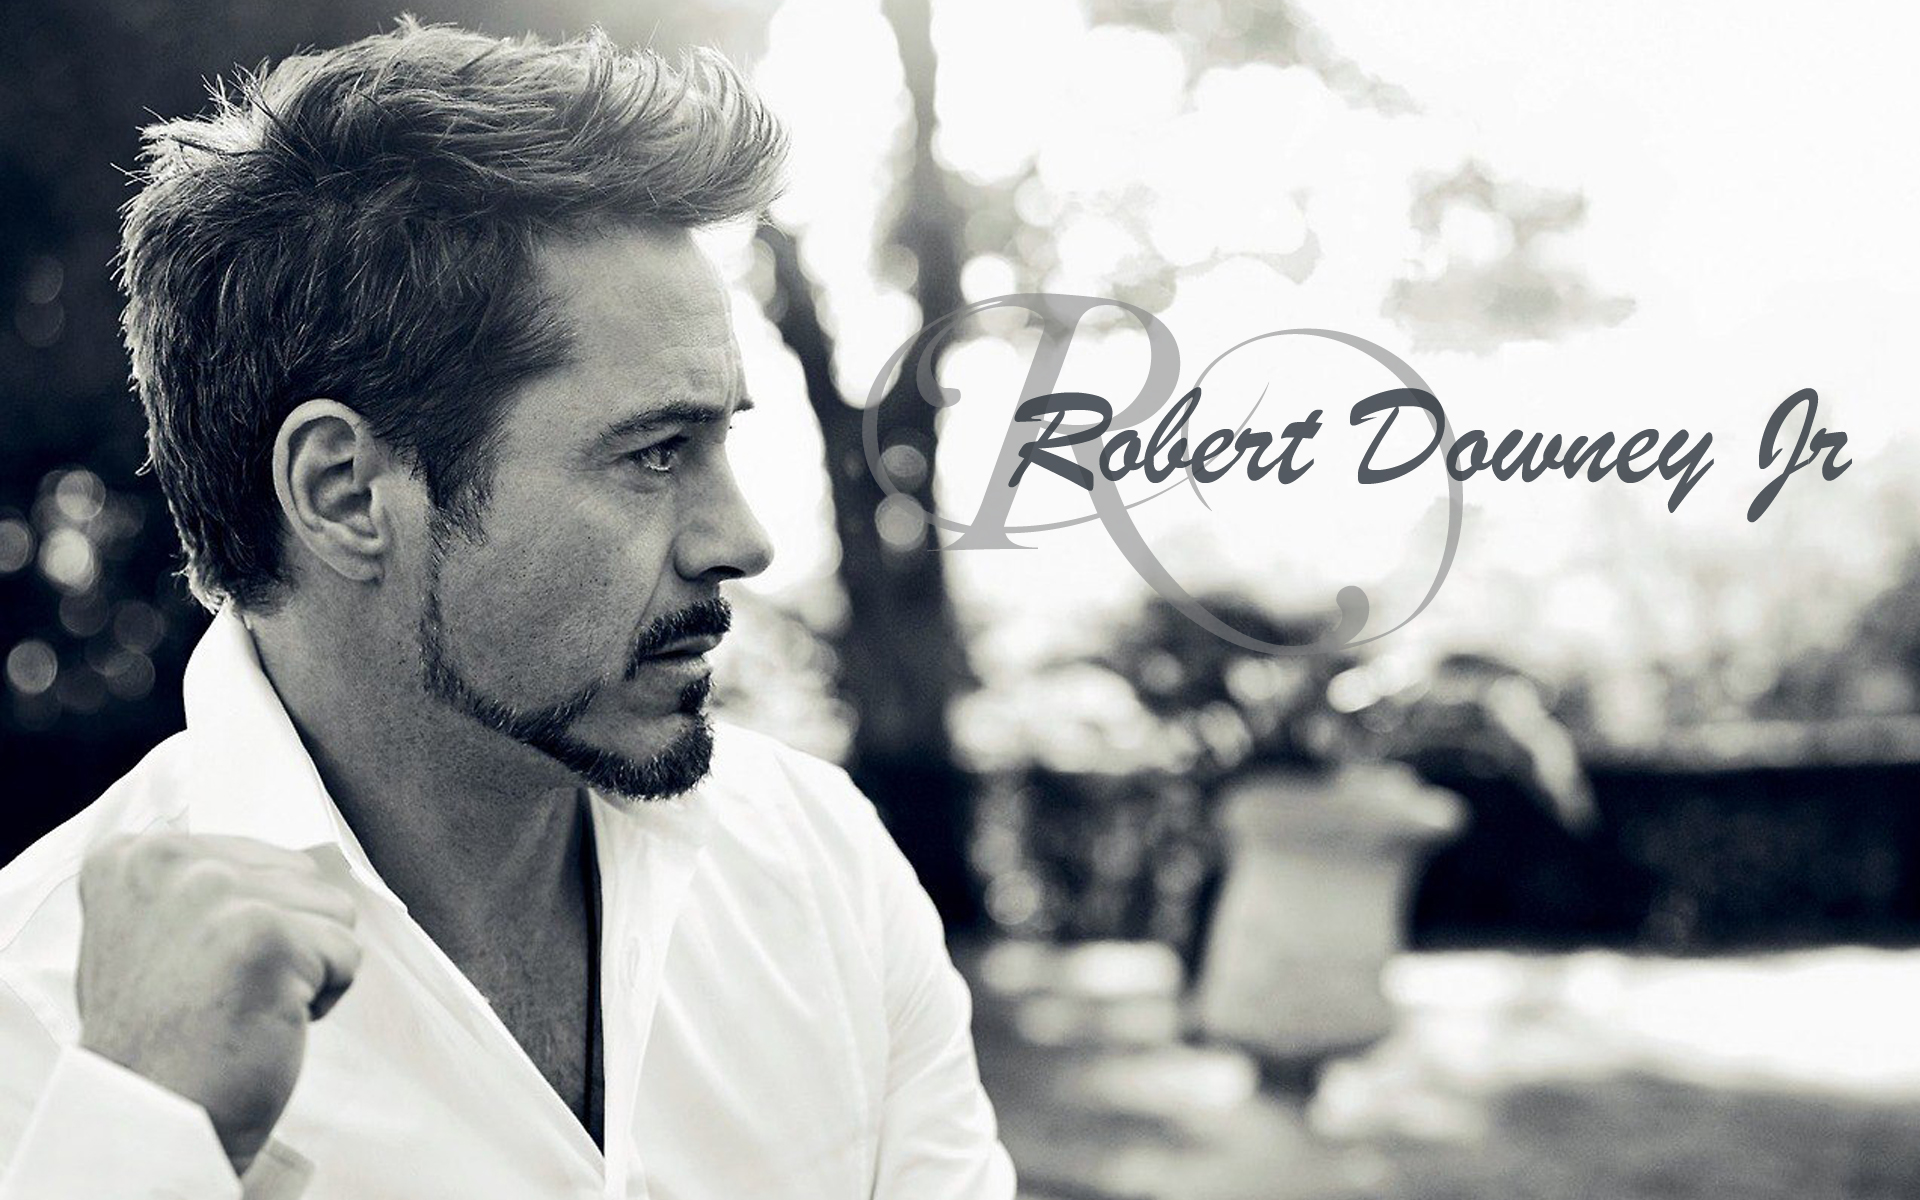 robert downey jr photo - photo #22